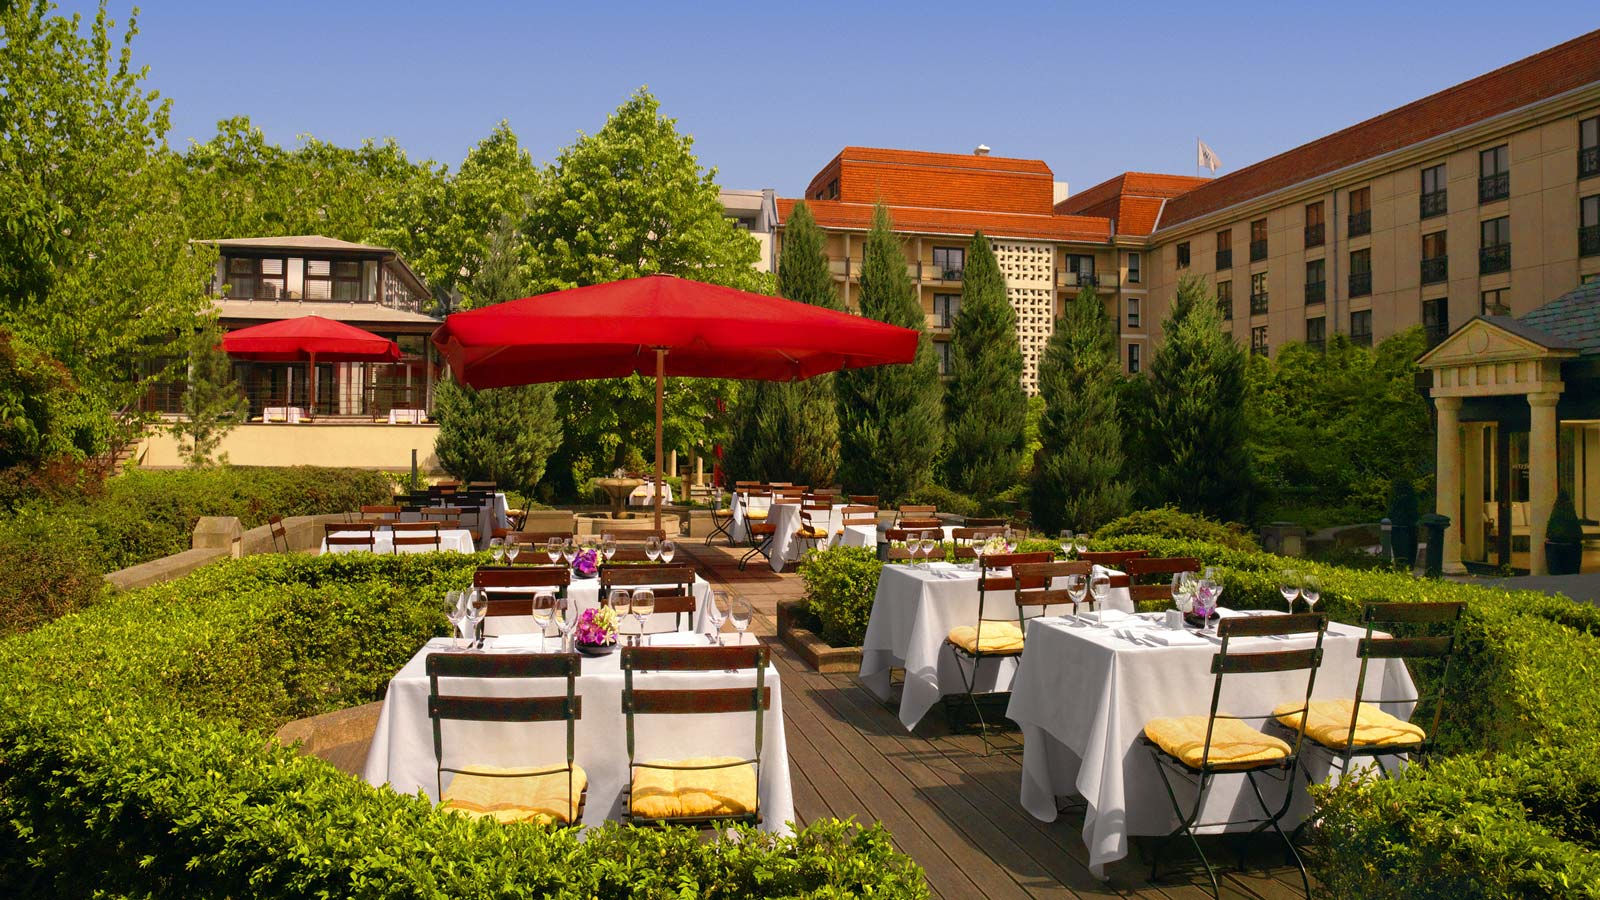 Hotelgarten des The Westin Grand Berlin Hotels